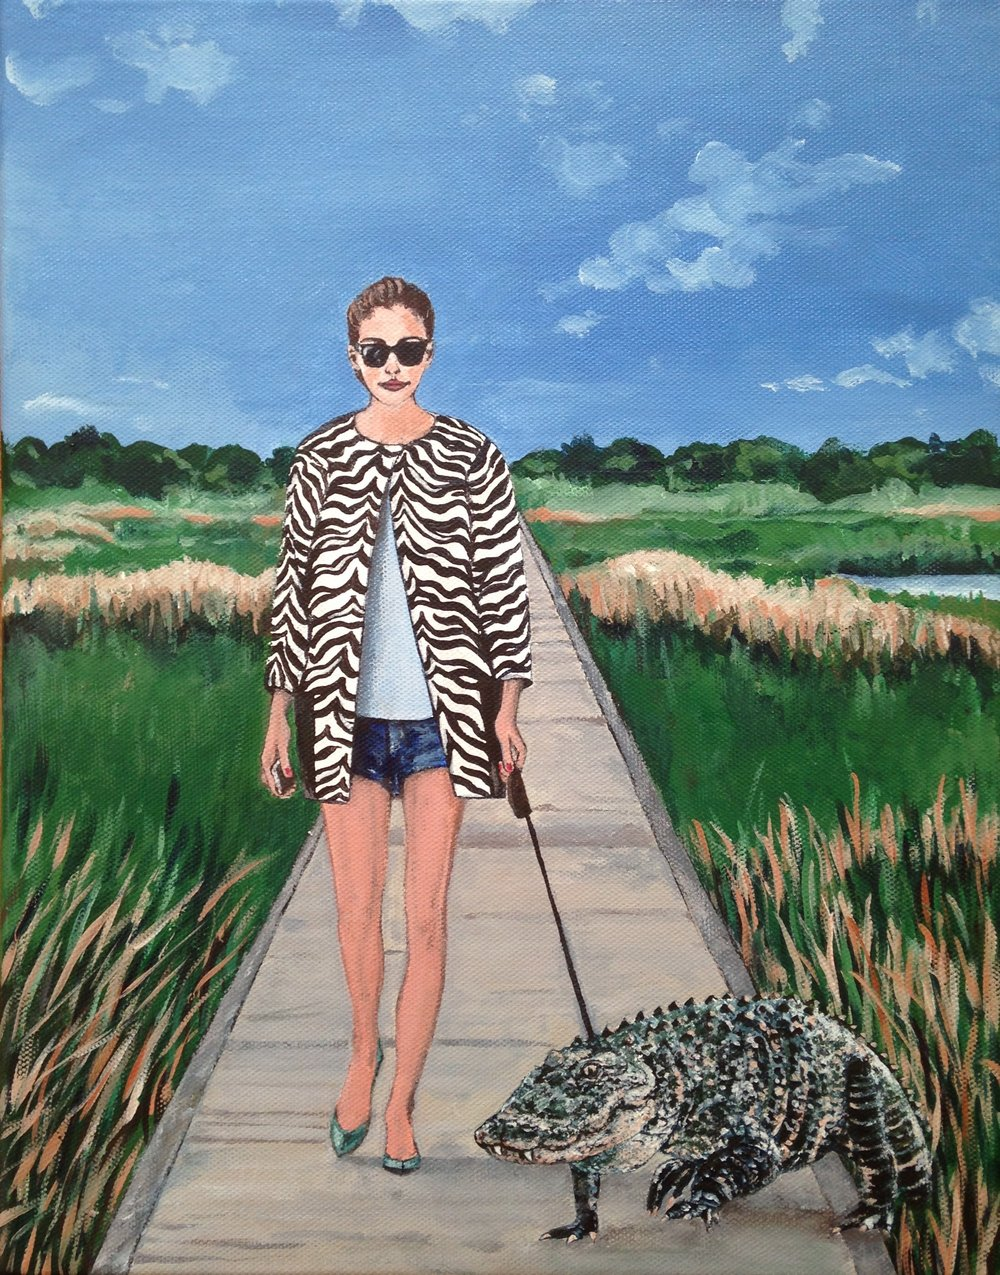 let's go for walkies! 11''x14'', acrylic on canvas, 2017